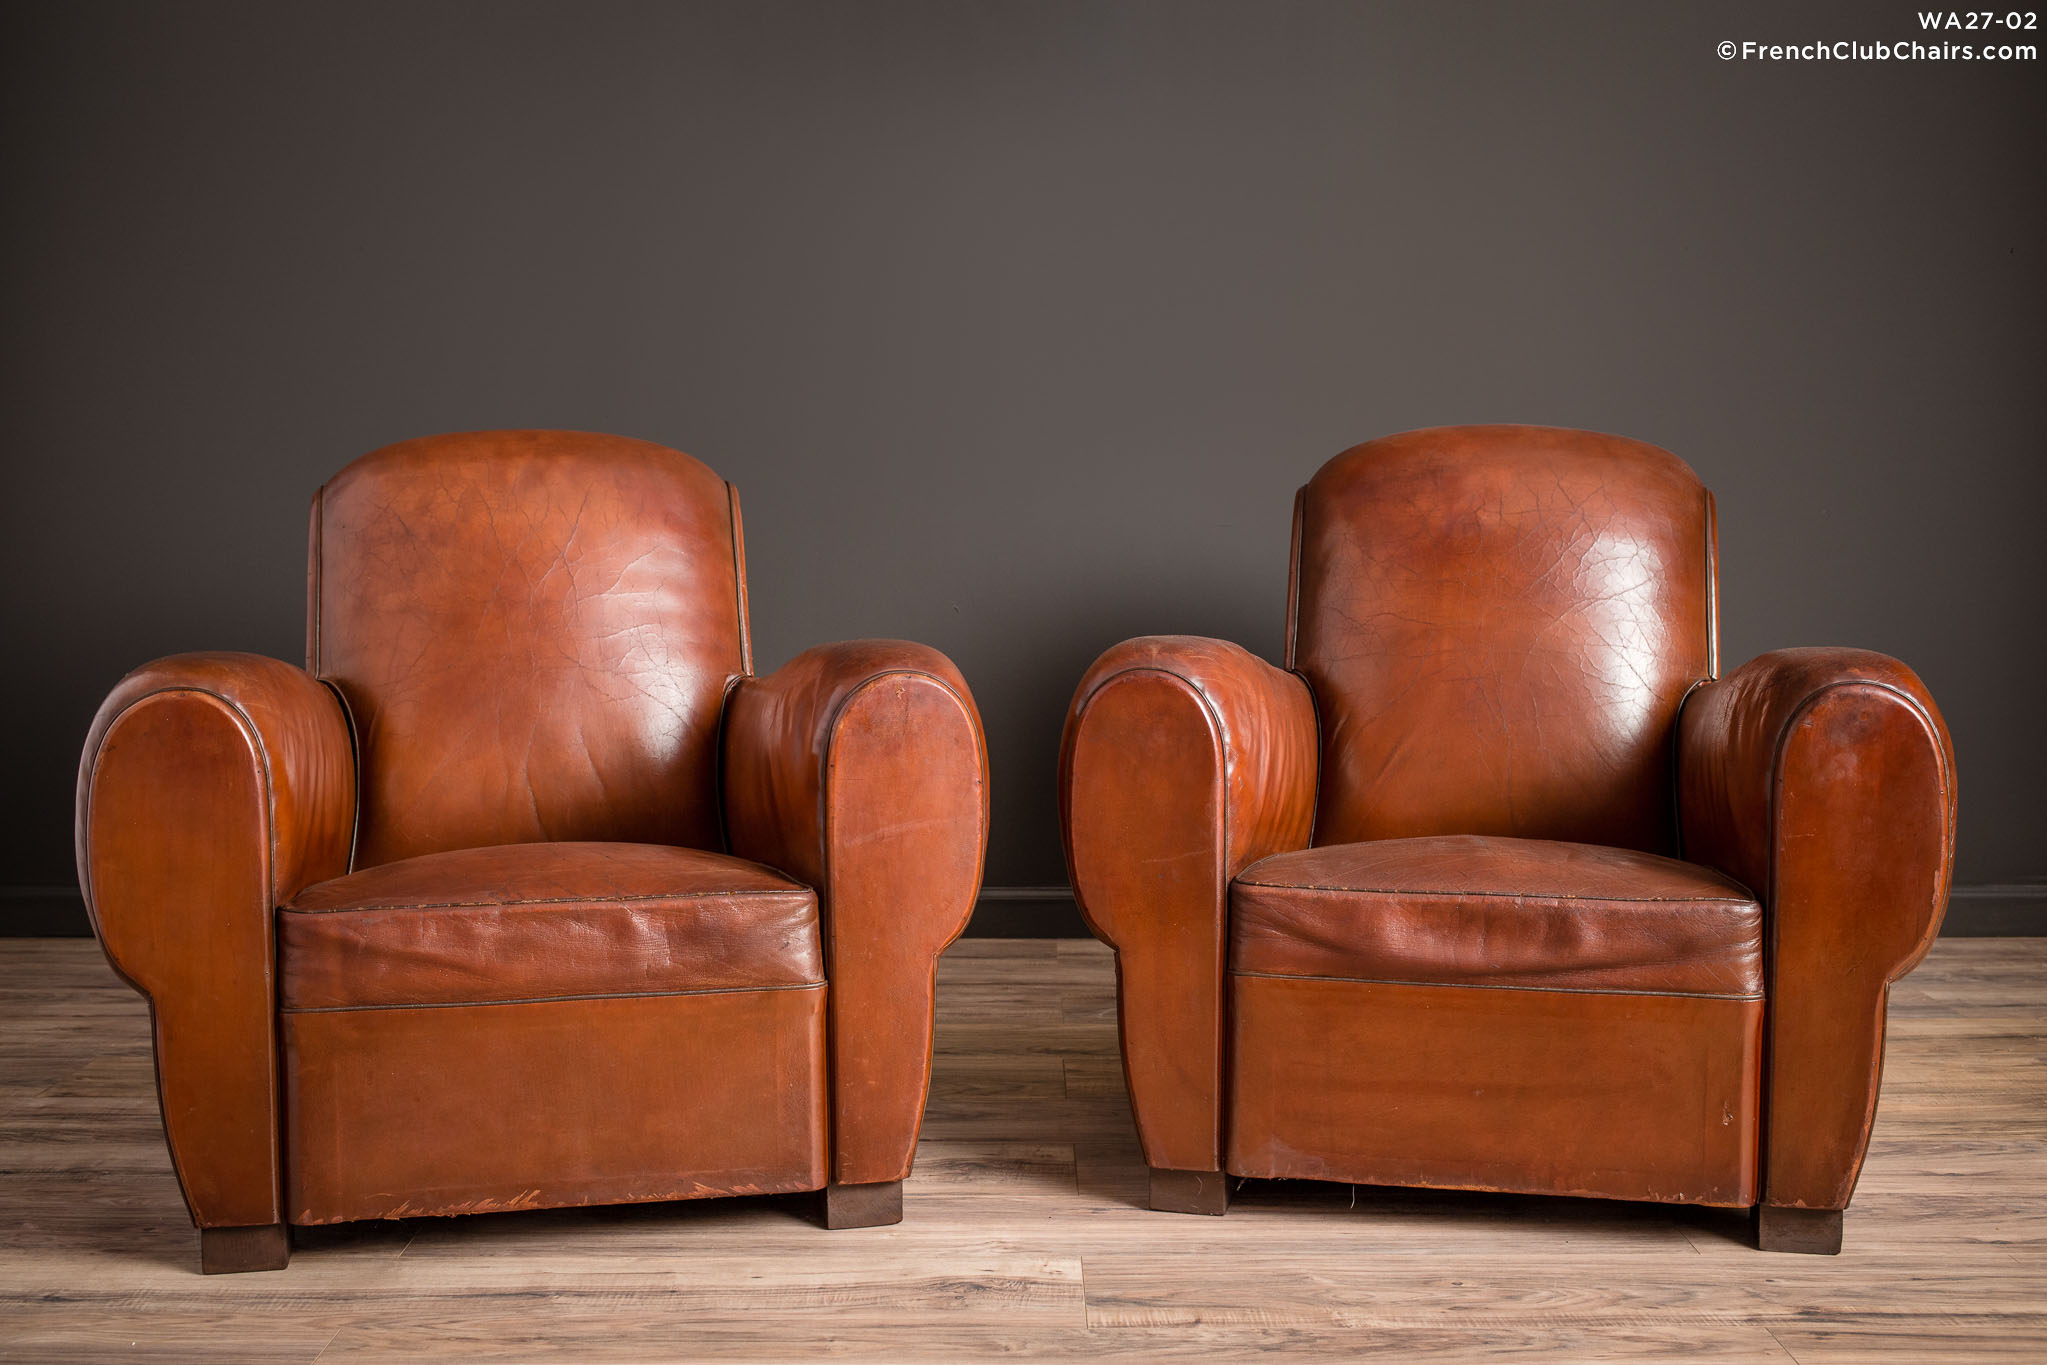 WA_27-02_Classic_Rollback_Cognac_Pair_R_1TQ-v01-williams-antiks-leather-french-club-chair-wa_fcccom